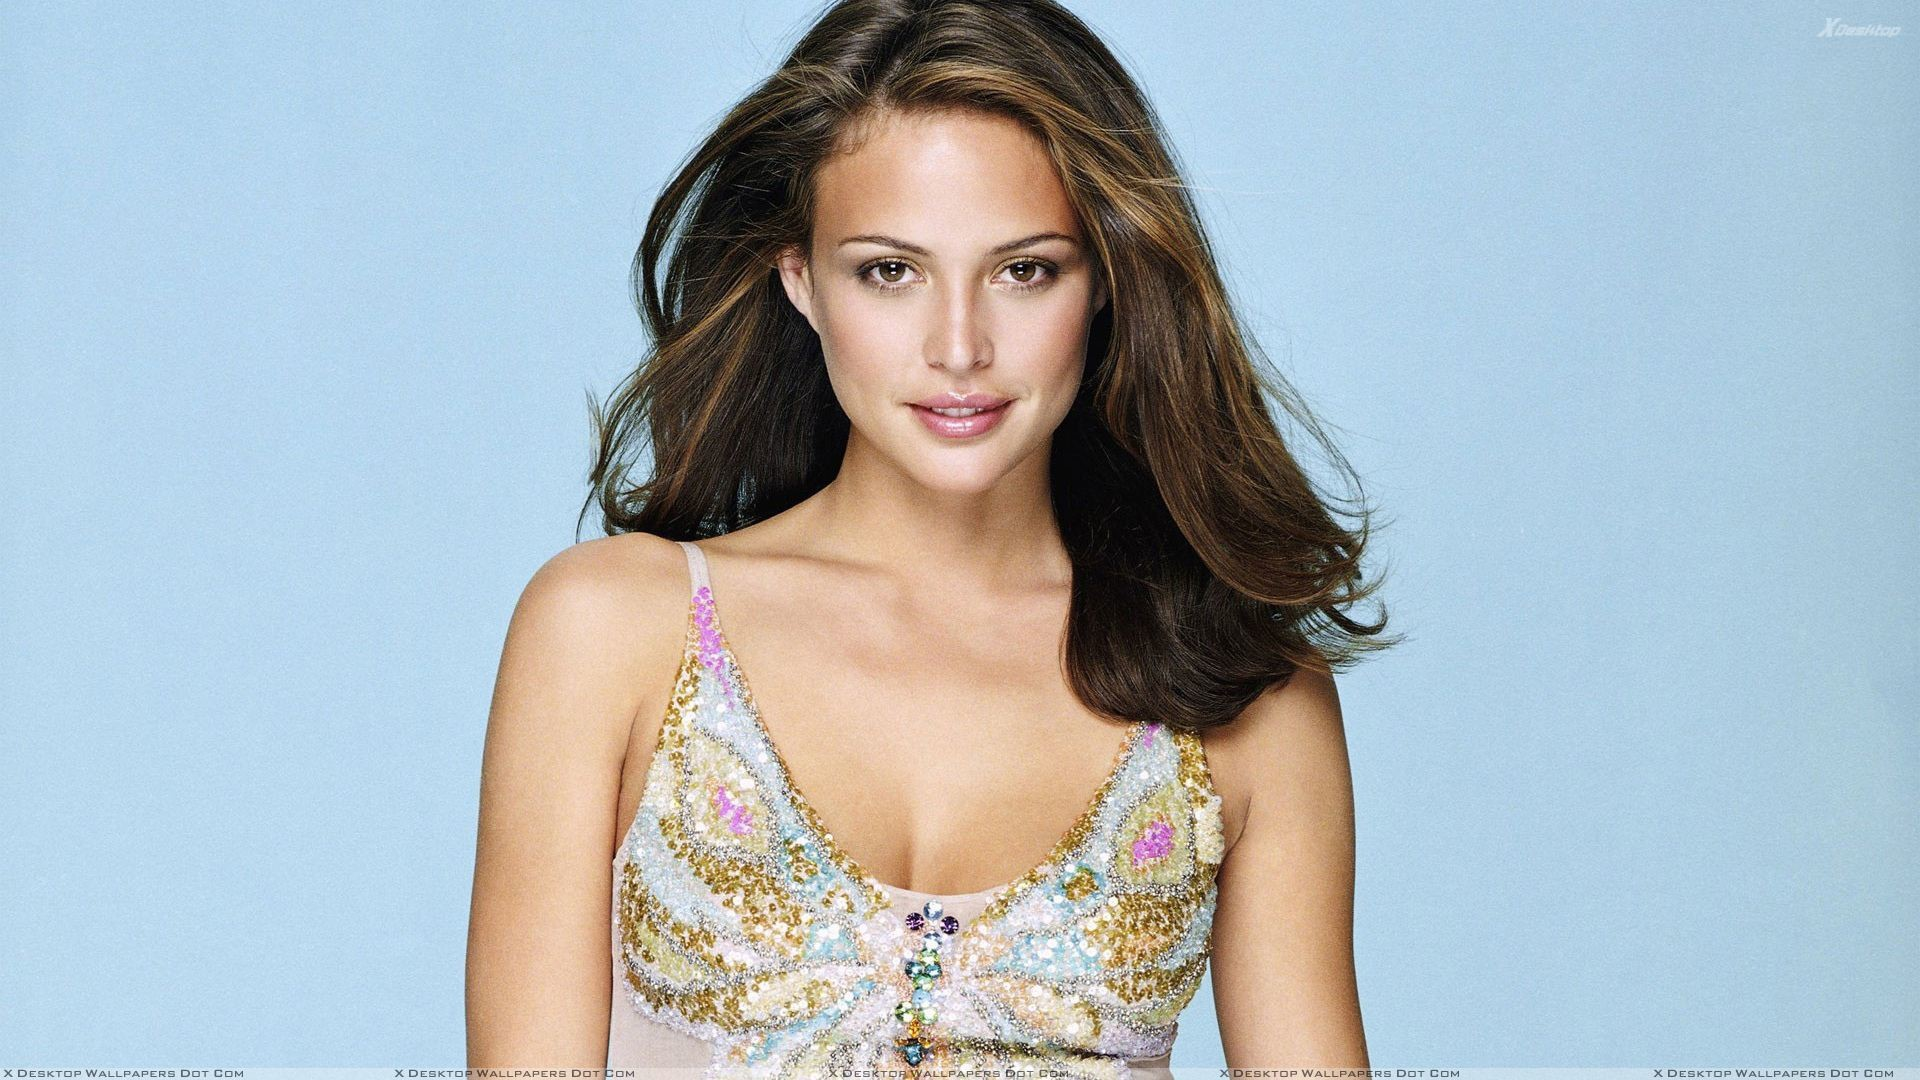 """Res: 1920x1080, You are viewing wallpaper titled """"Josie Maran ..."""